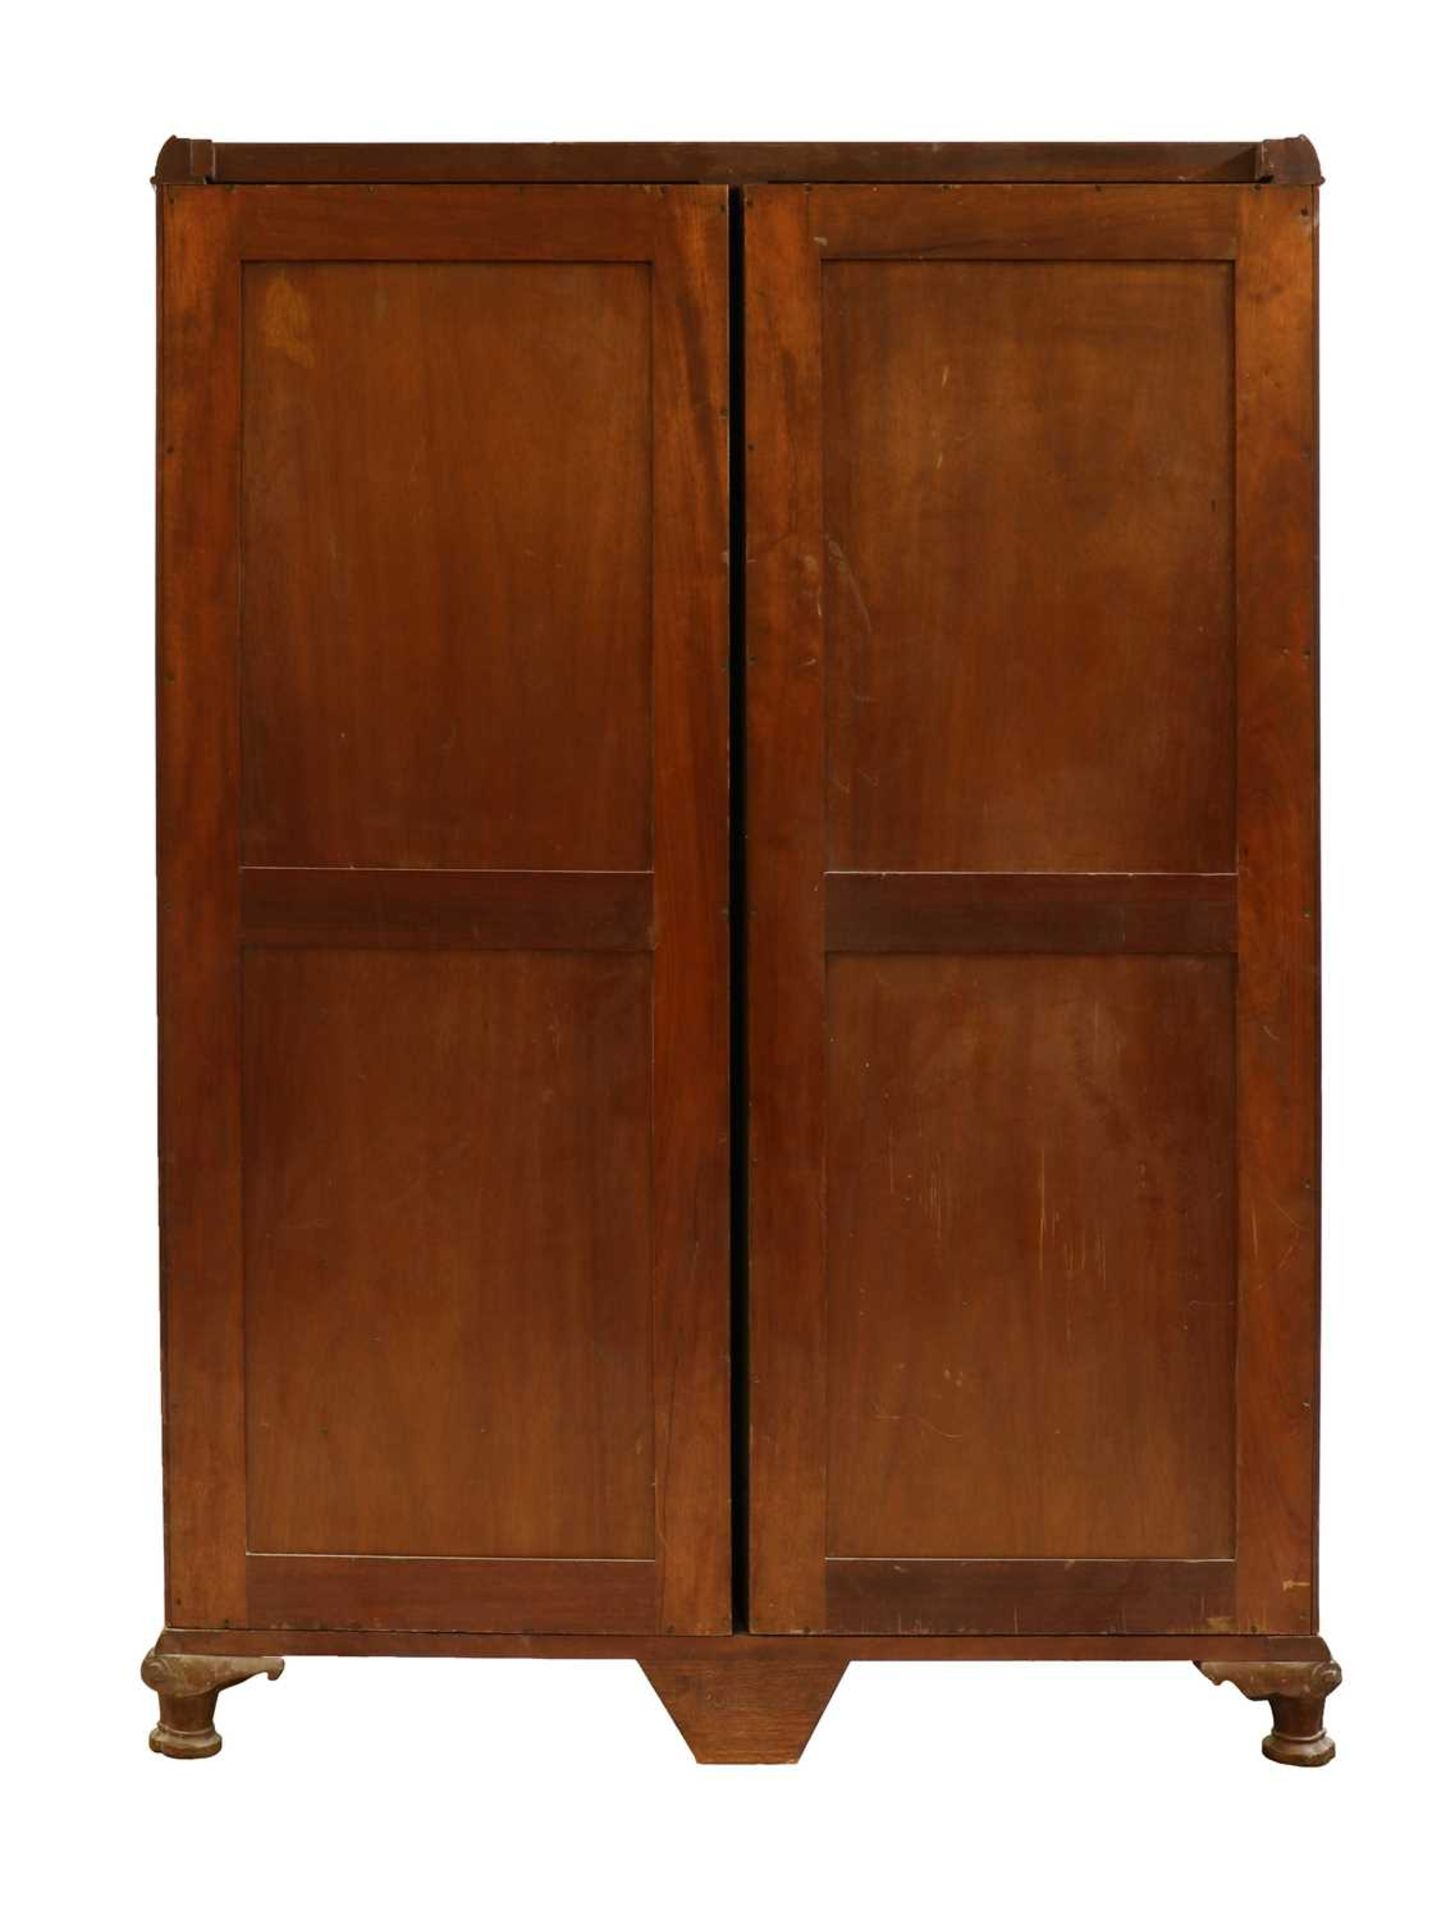 An Art Deco burr walnut and maple bedroom suite, - Image 18 of 45